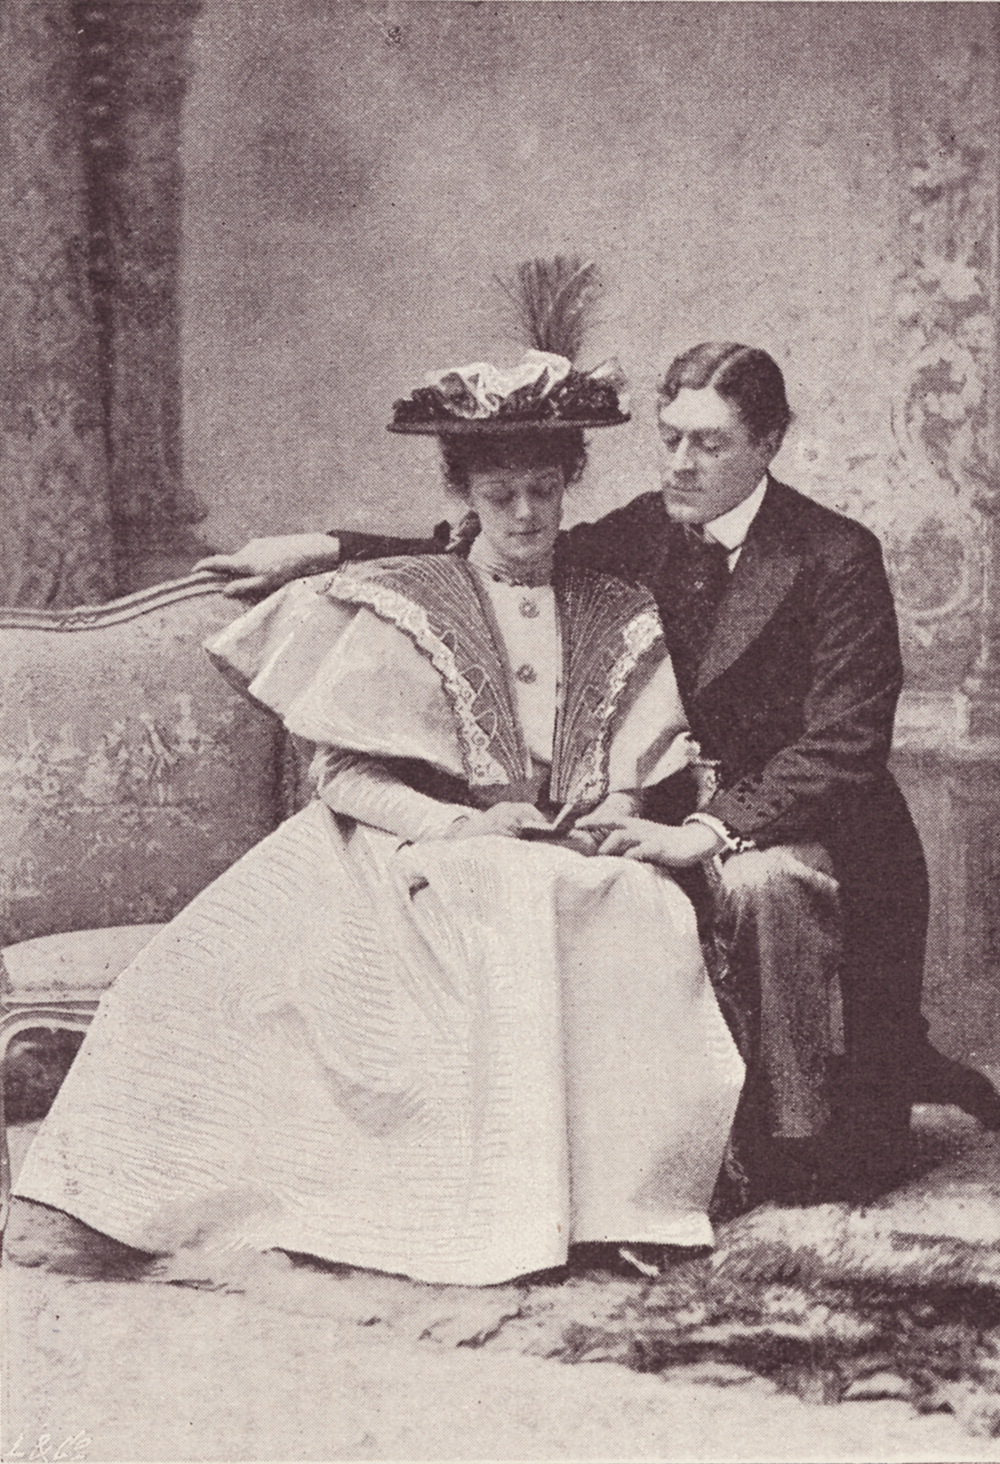 Irene Vanbrugh as Gwendolen Fairfax and George Alexander as Jack Worthing  in the 1895 production of 'The Importance of Being Earnest', from The  Sketch ...